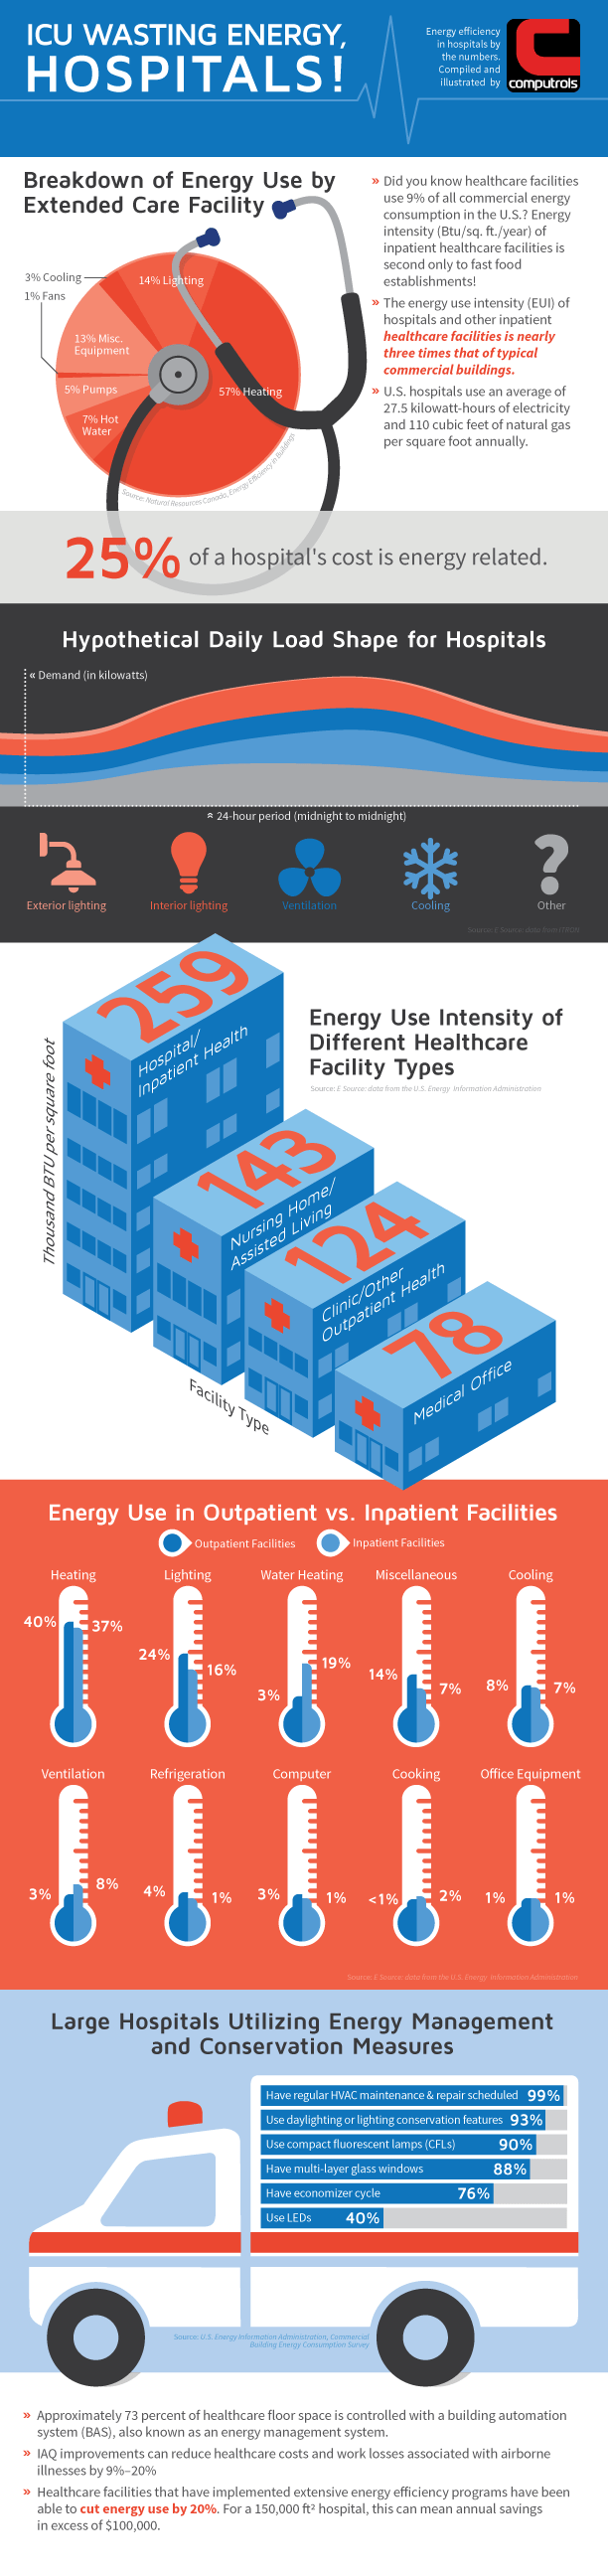 Why Hospital Energy Costs Need Urgent Treatment! - Infographic